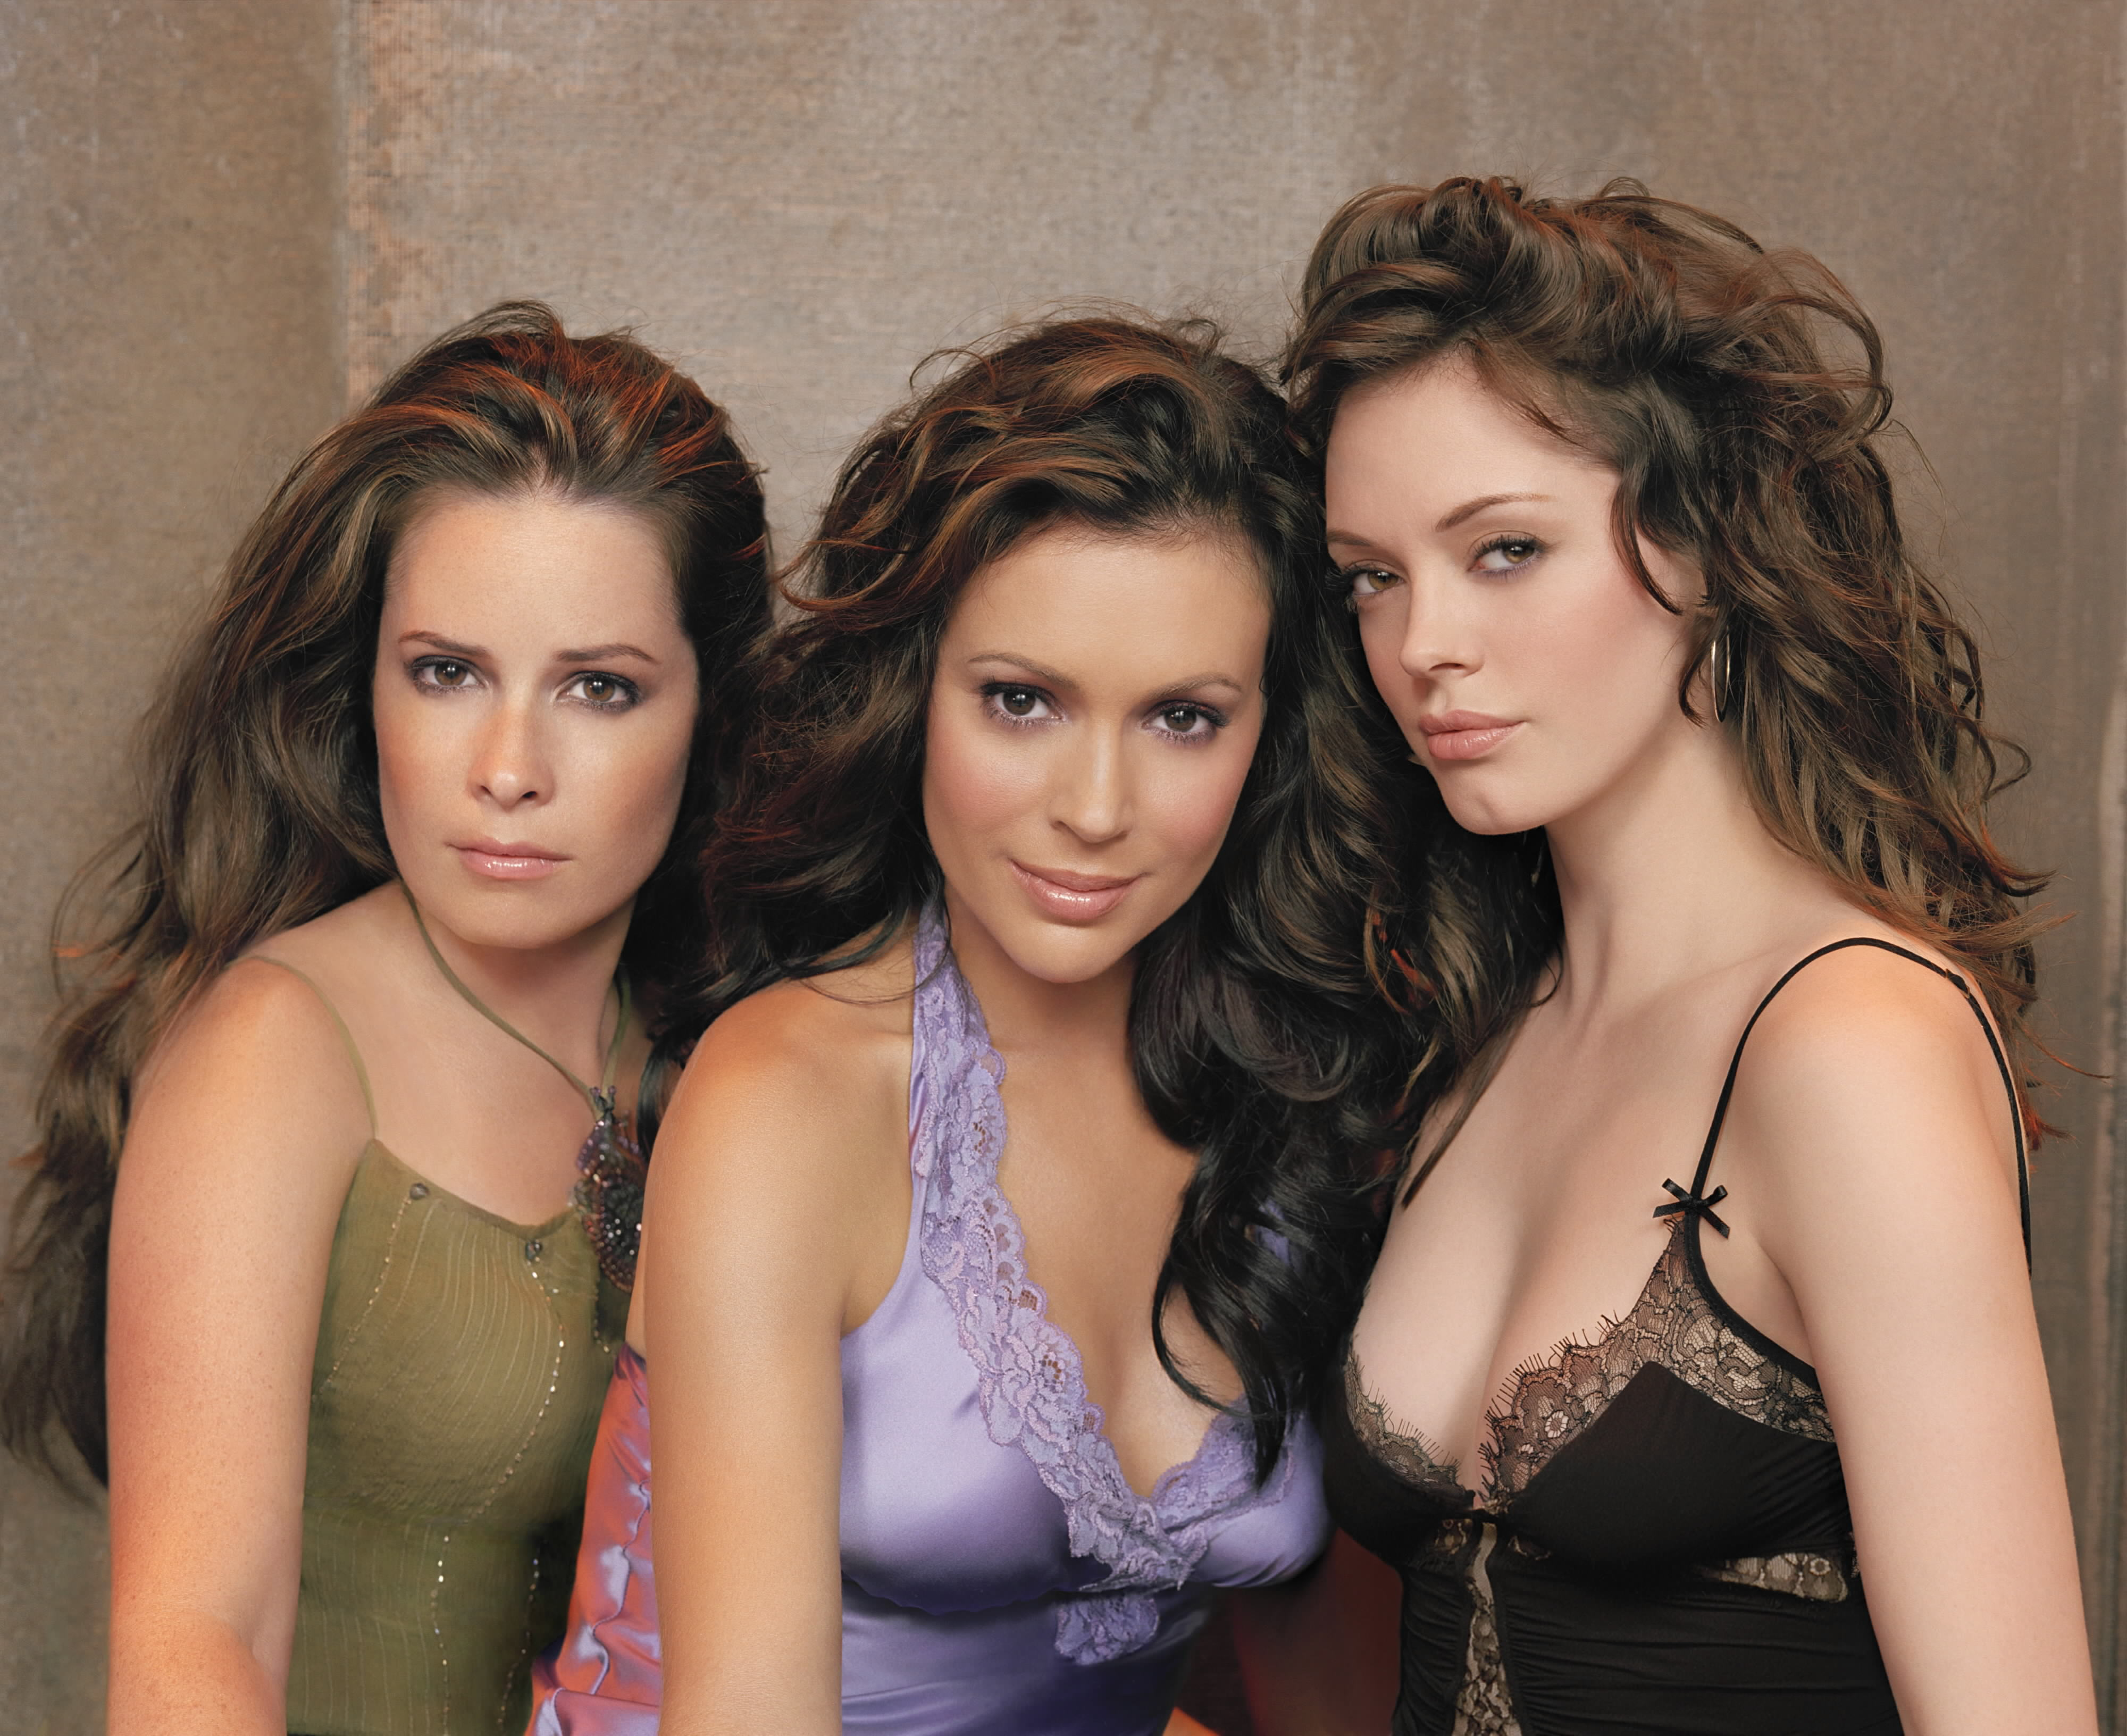 Alyssa Milano Movie Clips charmed fans campaign for a movie with original cast | flickreel